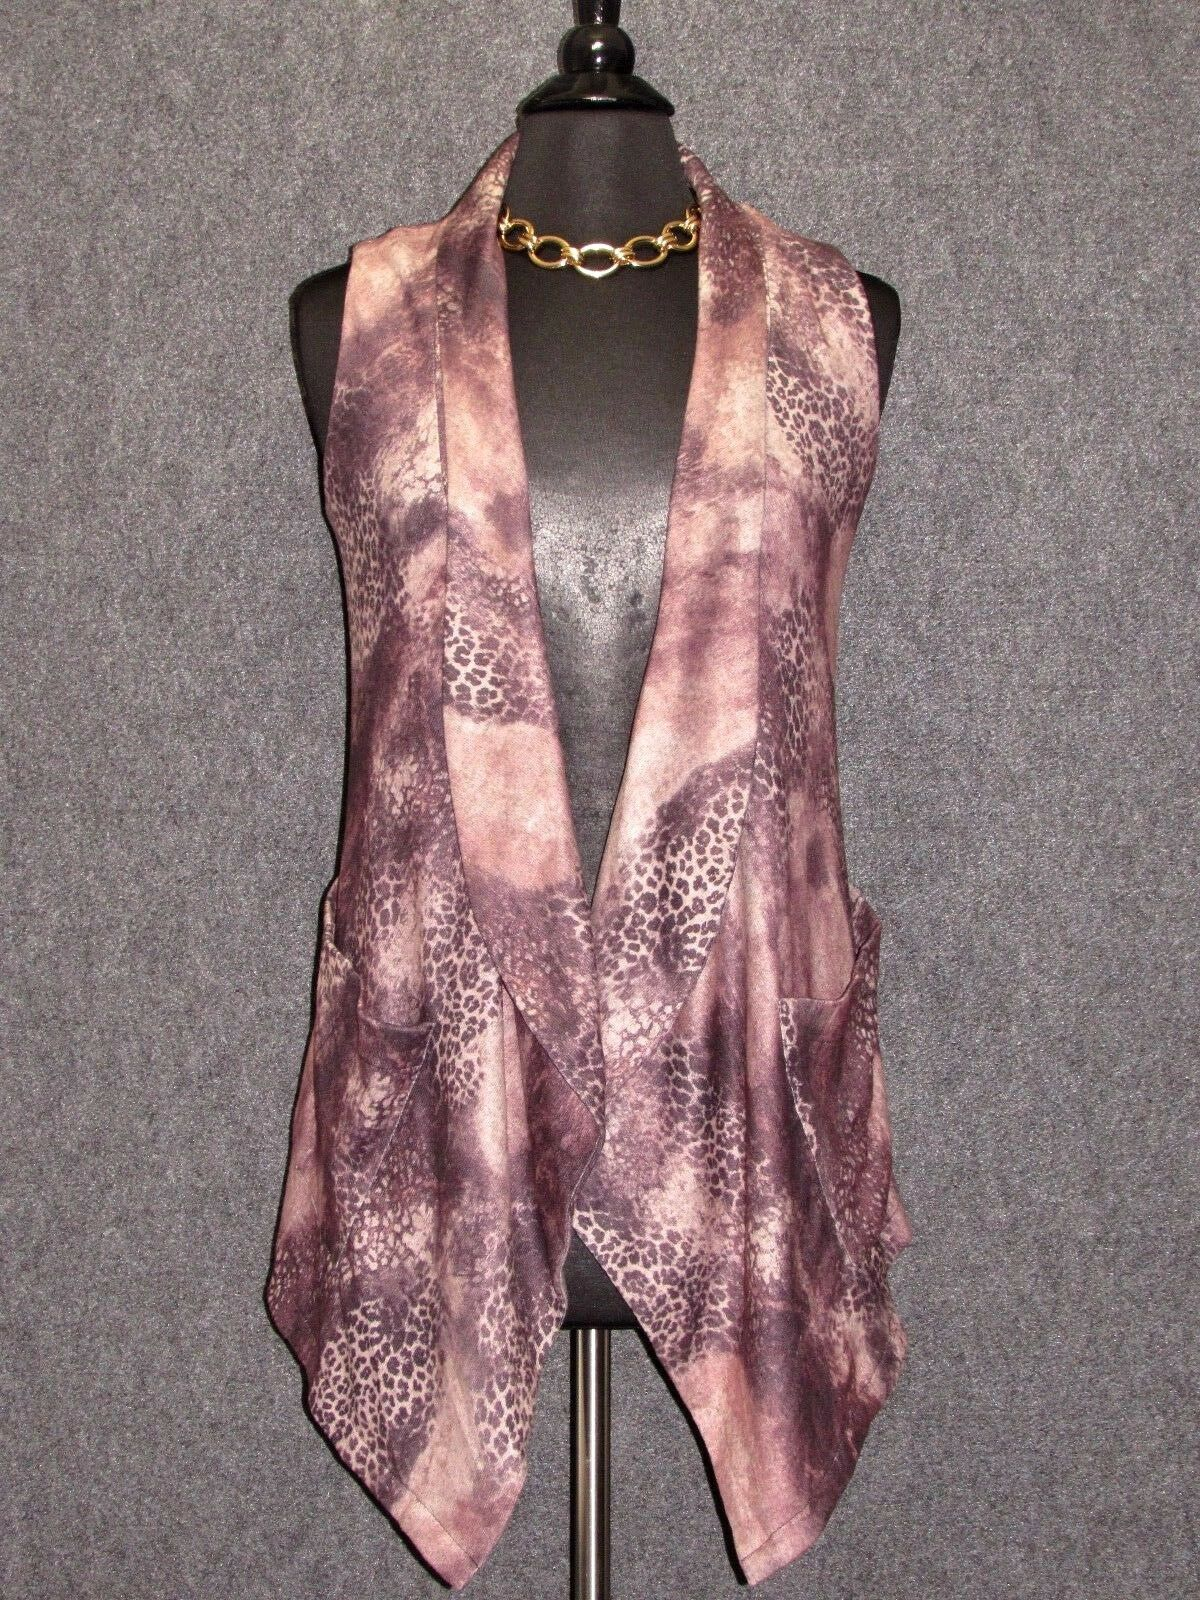 ABERTO MAKALI colorful Animal Print Sleeveless Open Front Sweater Vest SZ S NEW